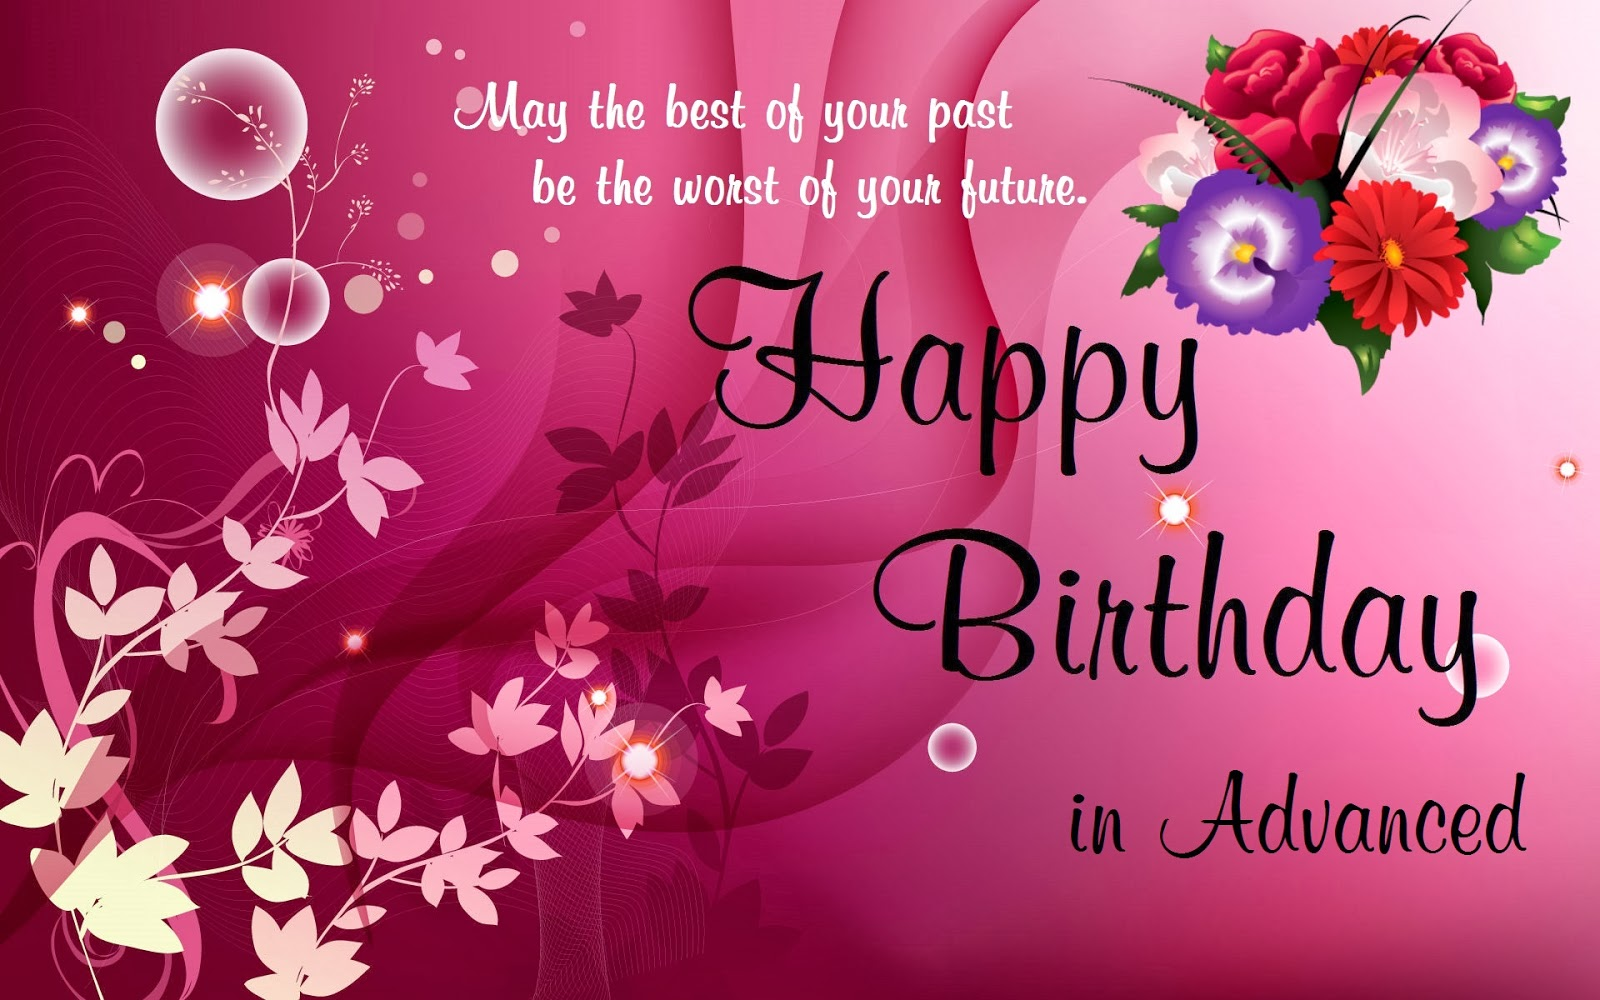 Birthday Wishes Sms SMS In Hindi Marathi For Friends English Urdu Sister Brother Husband Lover Photos